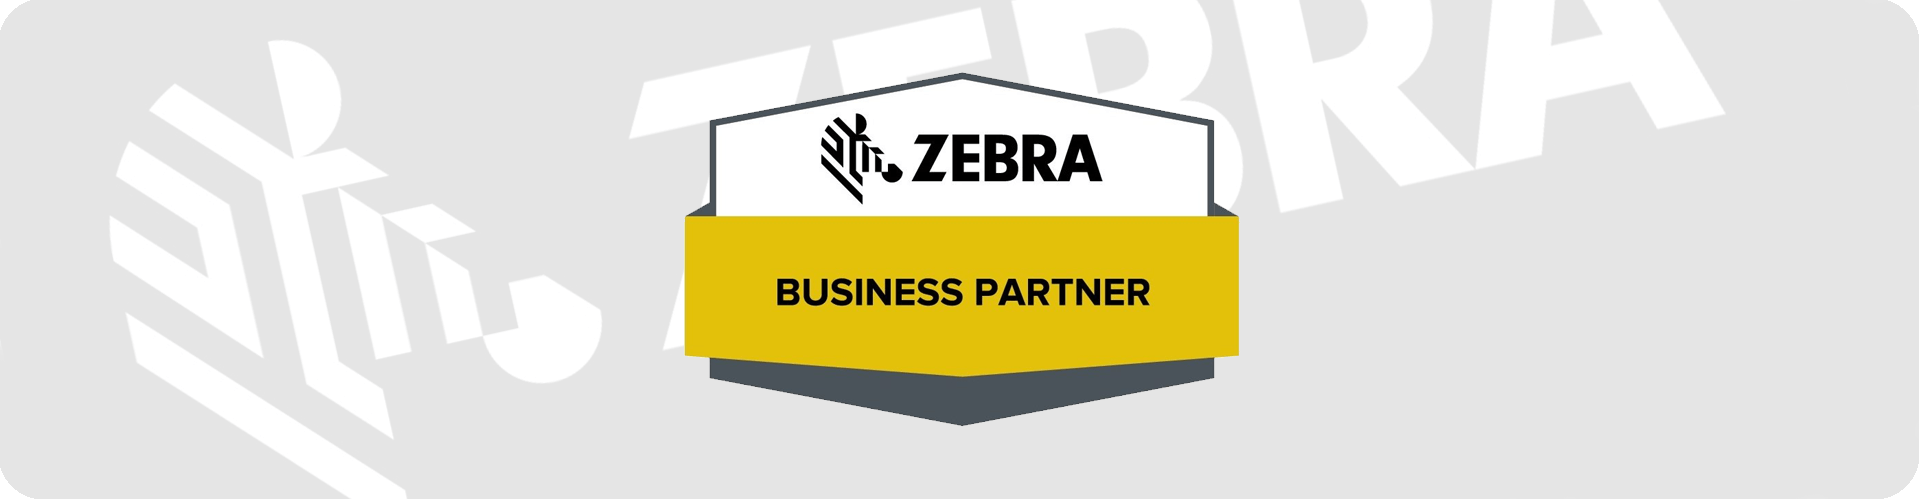 zebra business partner logo